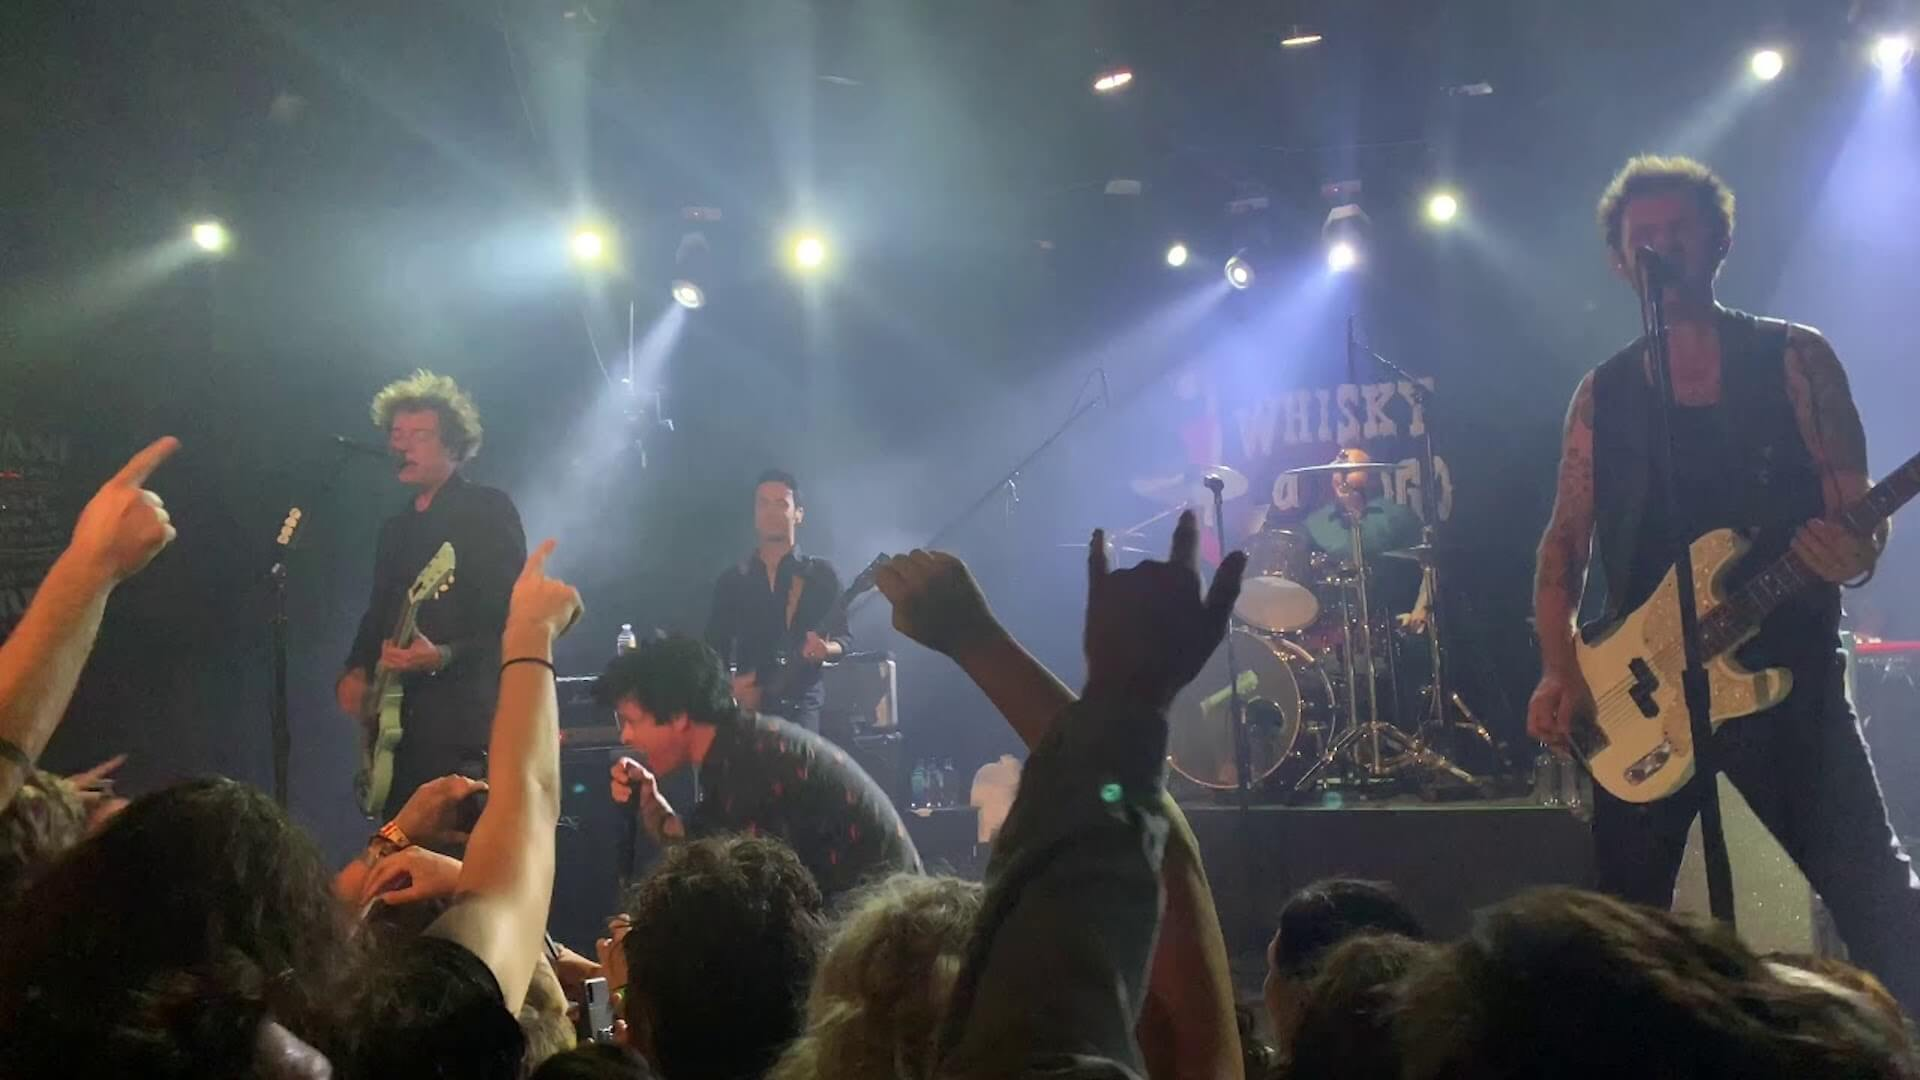 Green Day live at the Whiskey A Go Go